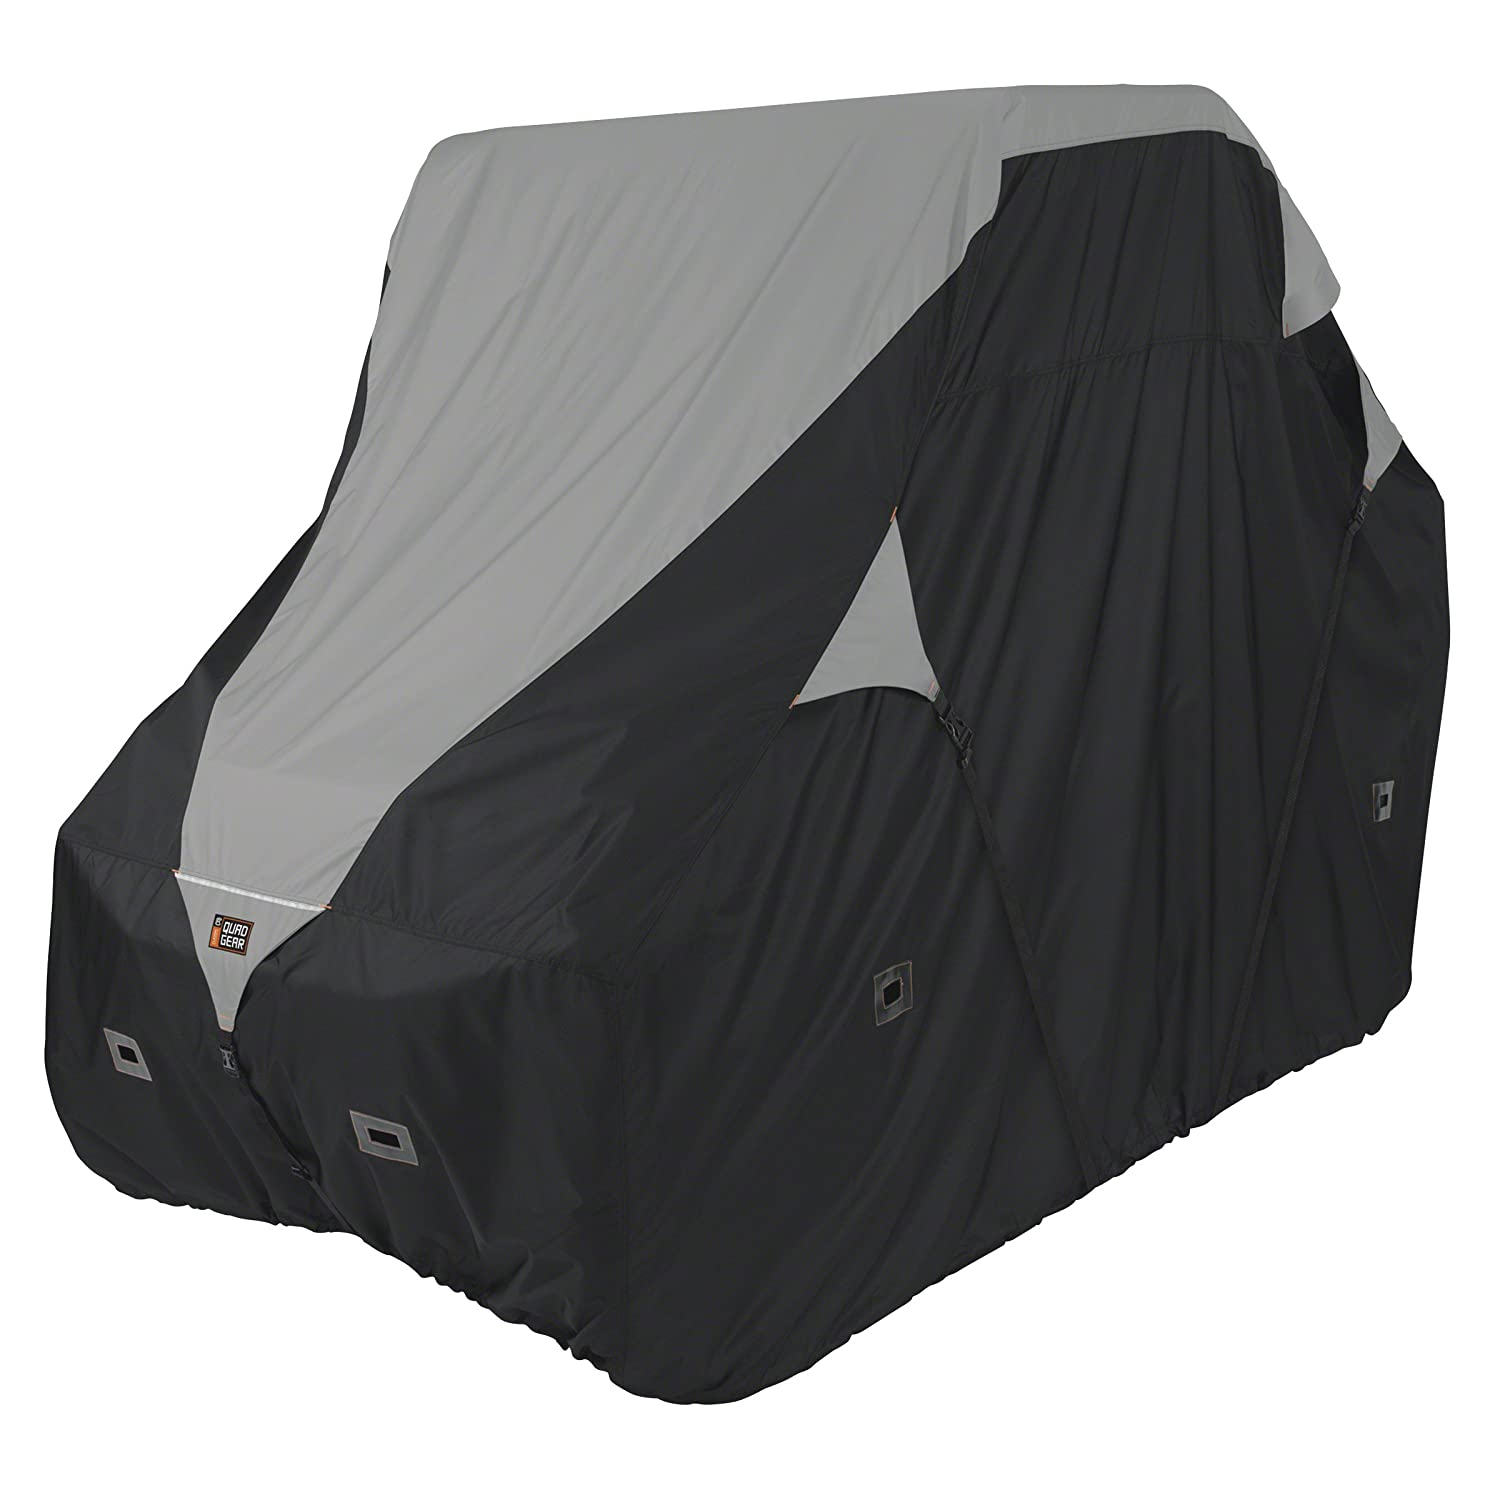 Classic Accessories 18-064-043801-00 Black/Grey QuadGear UTV Deluxe Storage Cover (For Mid Sized 2 Passenger UTVs Up To 113'L 60'W 70'H)